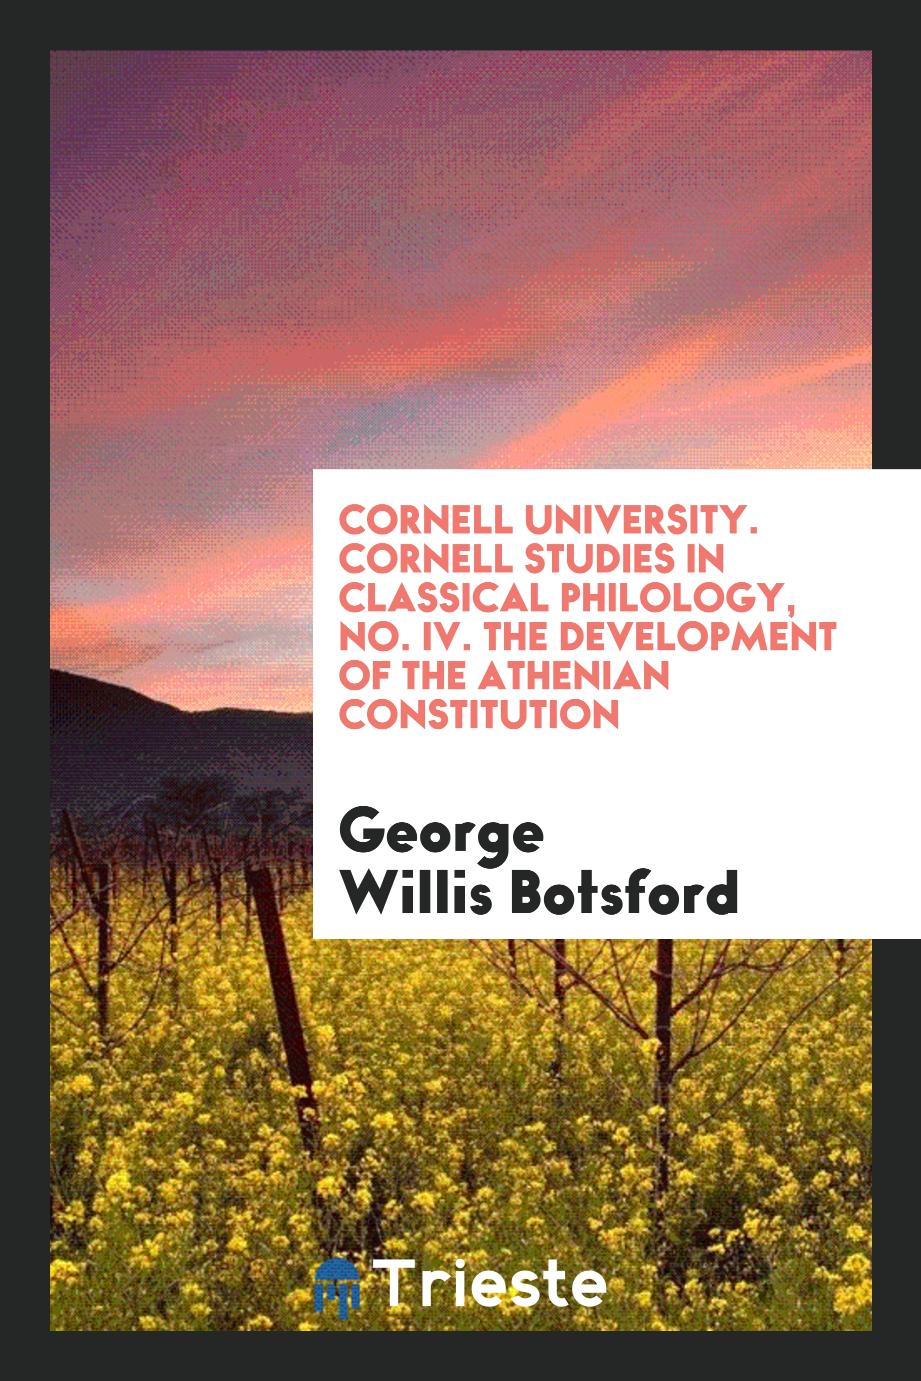 Cornell University. Cornell Studies in Classical Philology, No. IV. The Development of the Athenian Constitution